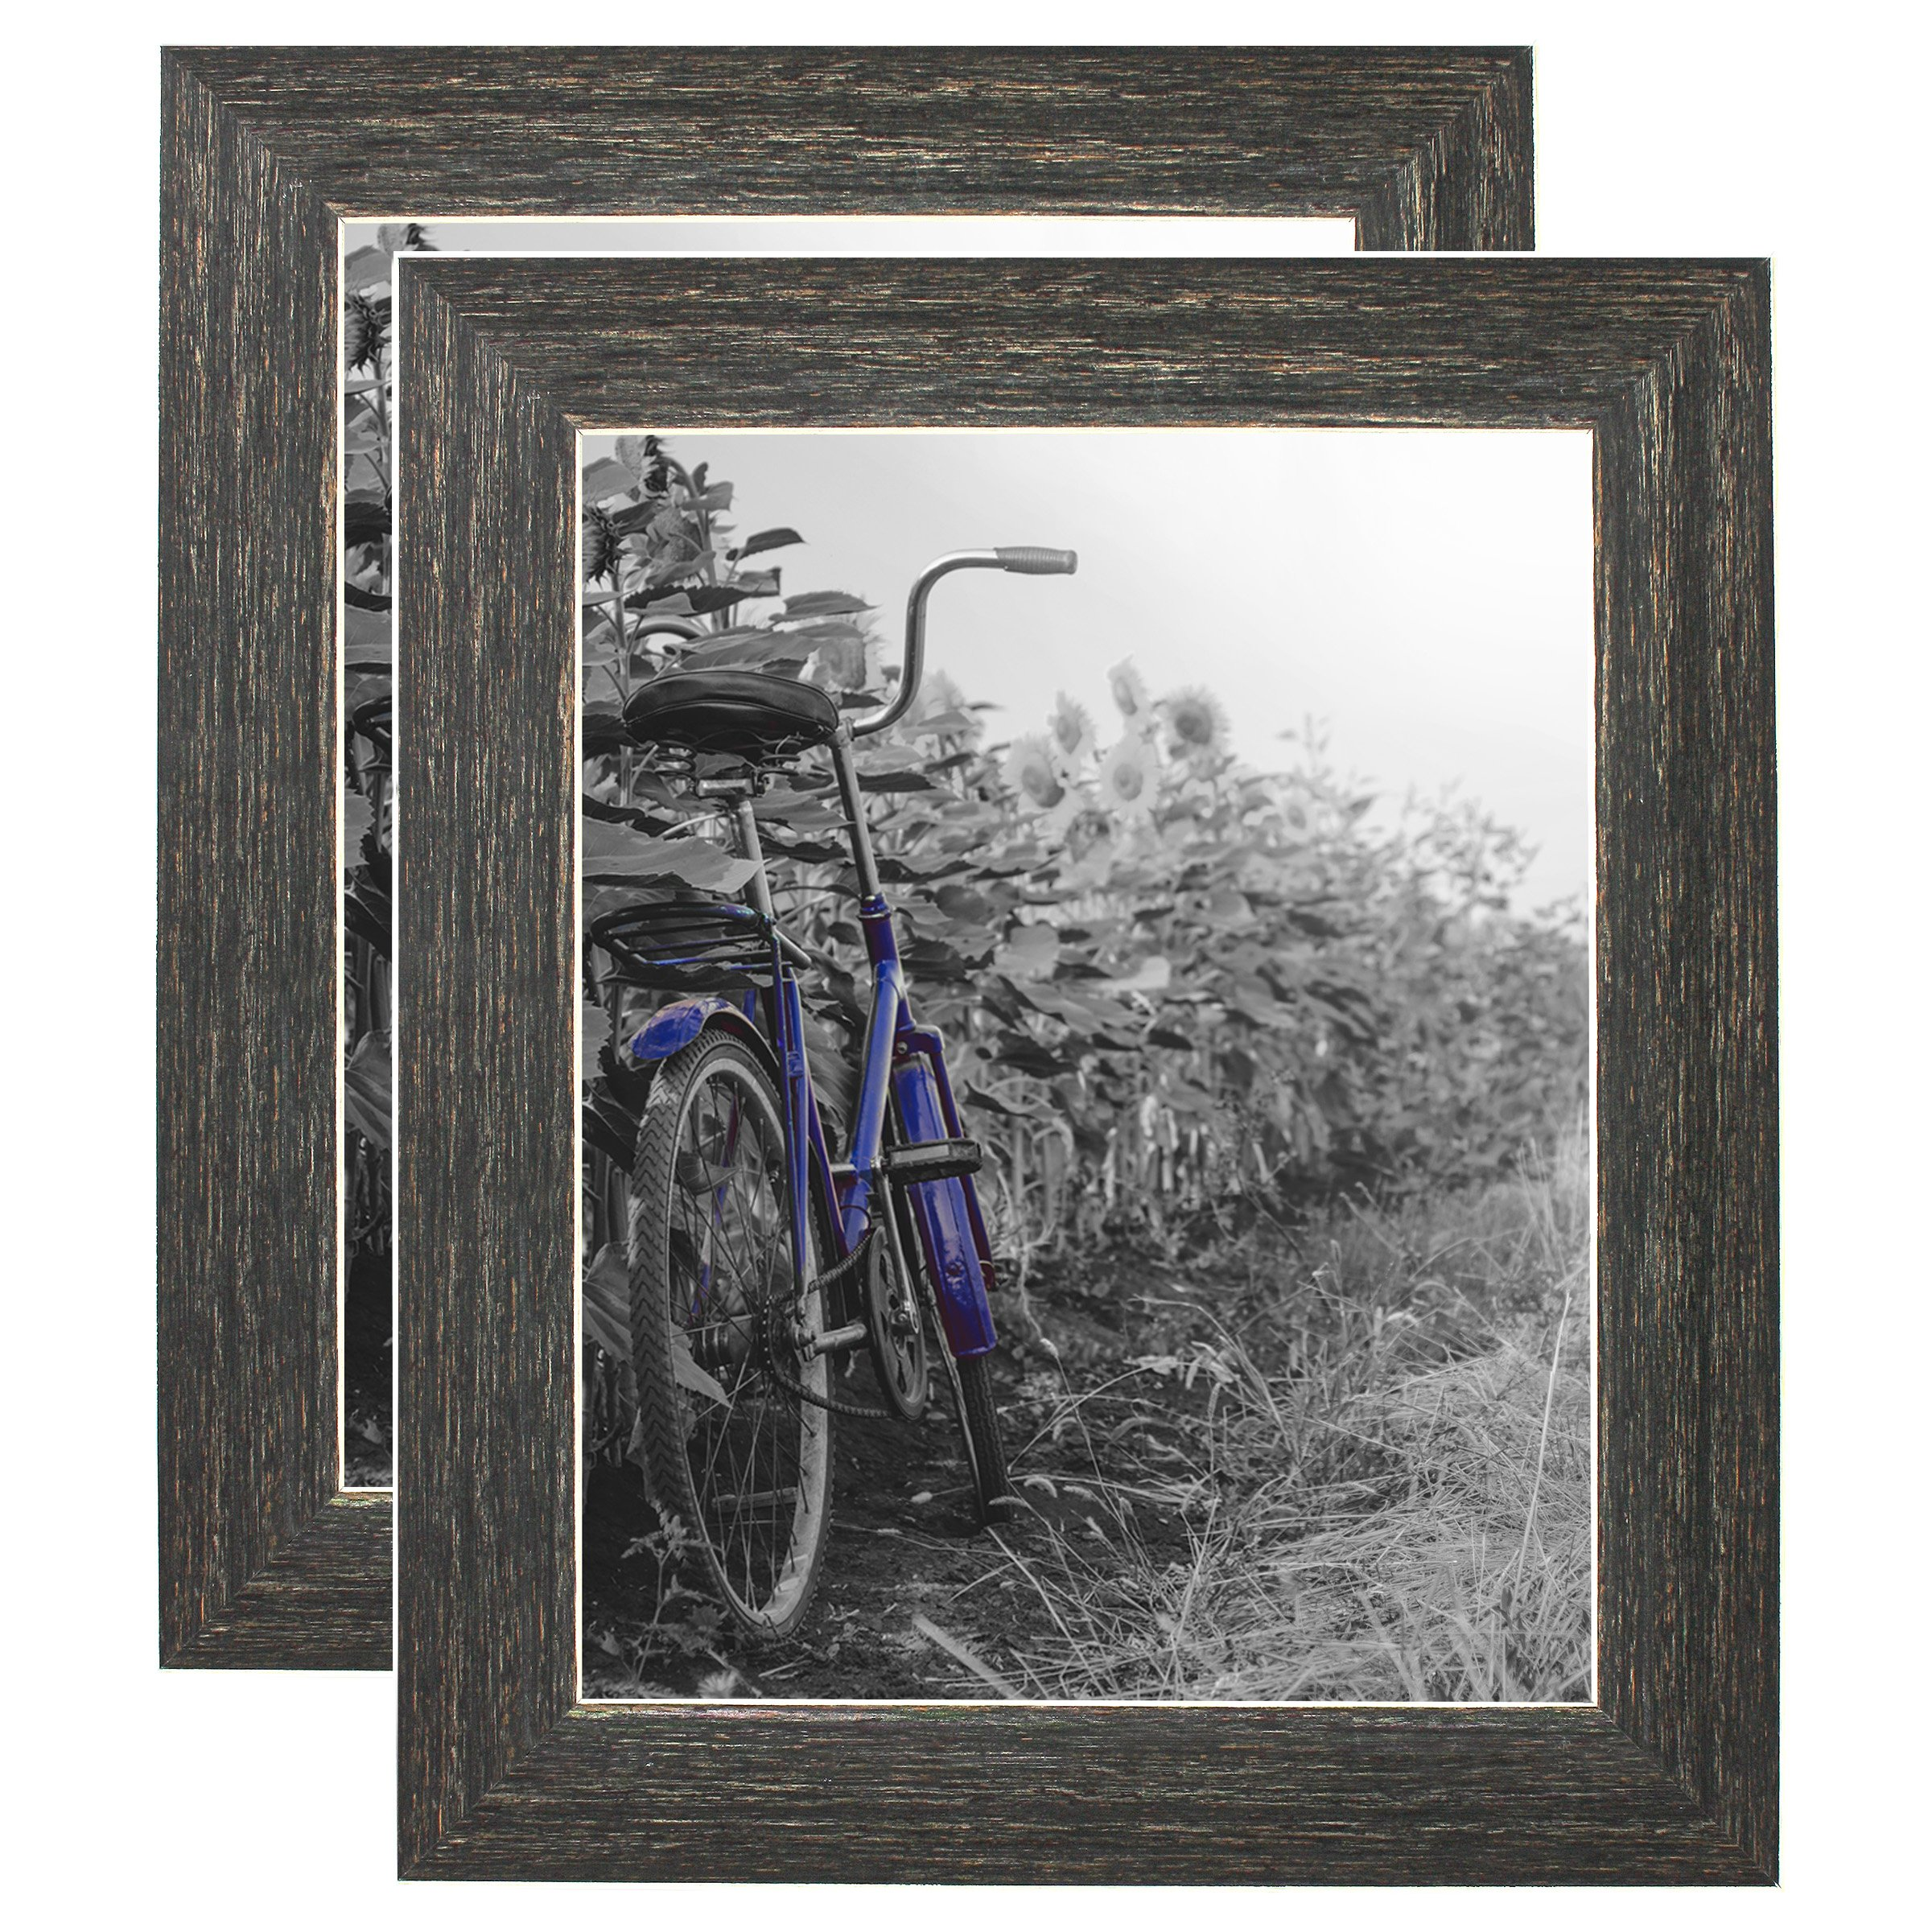 Americanflat 2 Pack - 8x10 Barnwood Rustic Style Picture Frames with Easels - Made for Wall and Tabletop Display by Americanflat